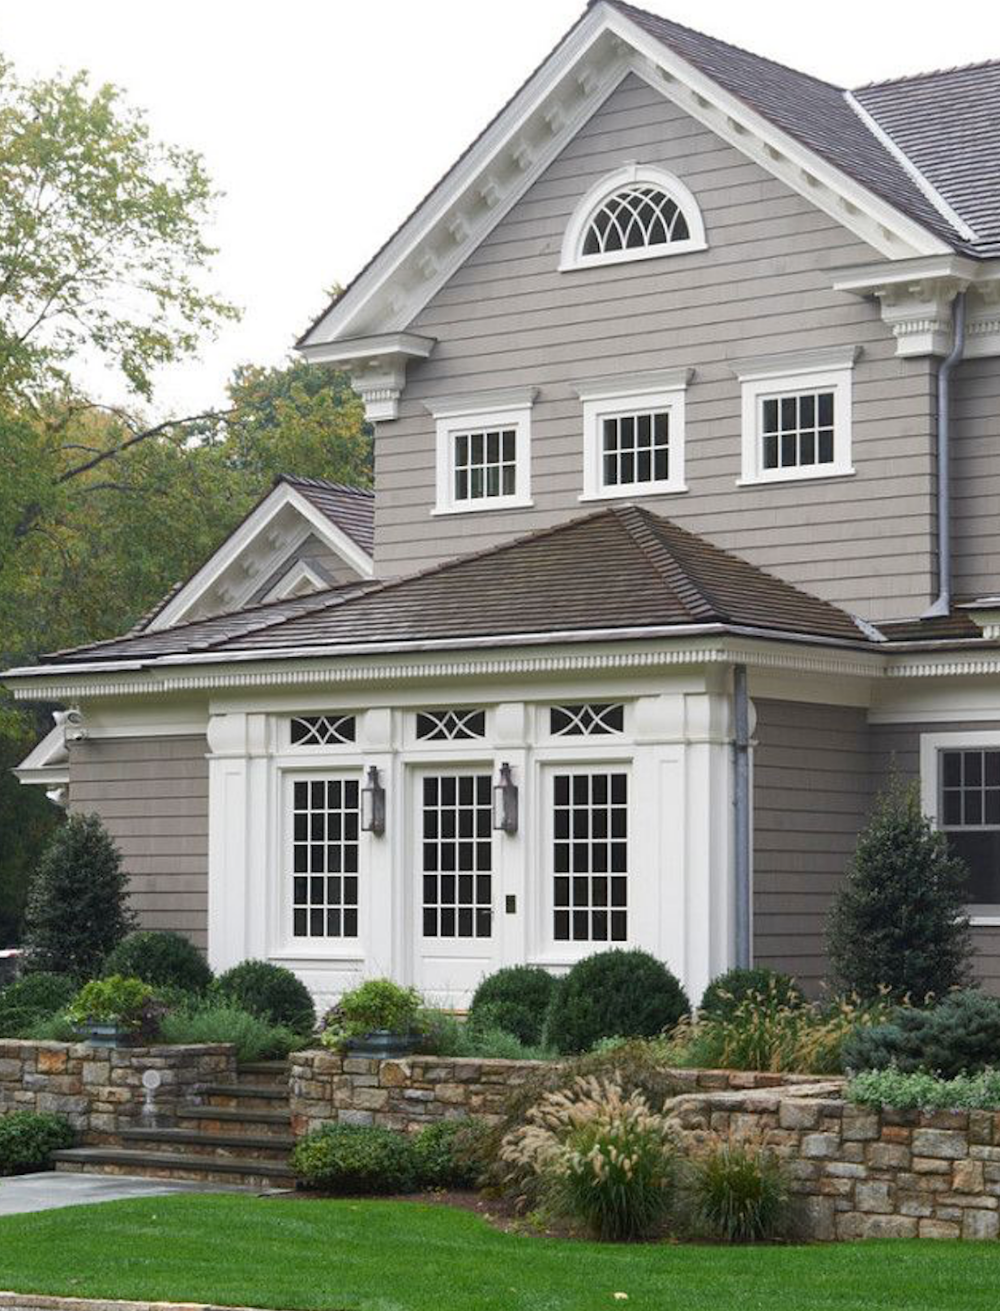 4 Beautiful Earth Tone Paint Colors For Your Home In 2019 Brick Batten Blog House Paint Exterior Exterior Paint Colors For House Exterior Gray Paint